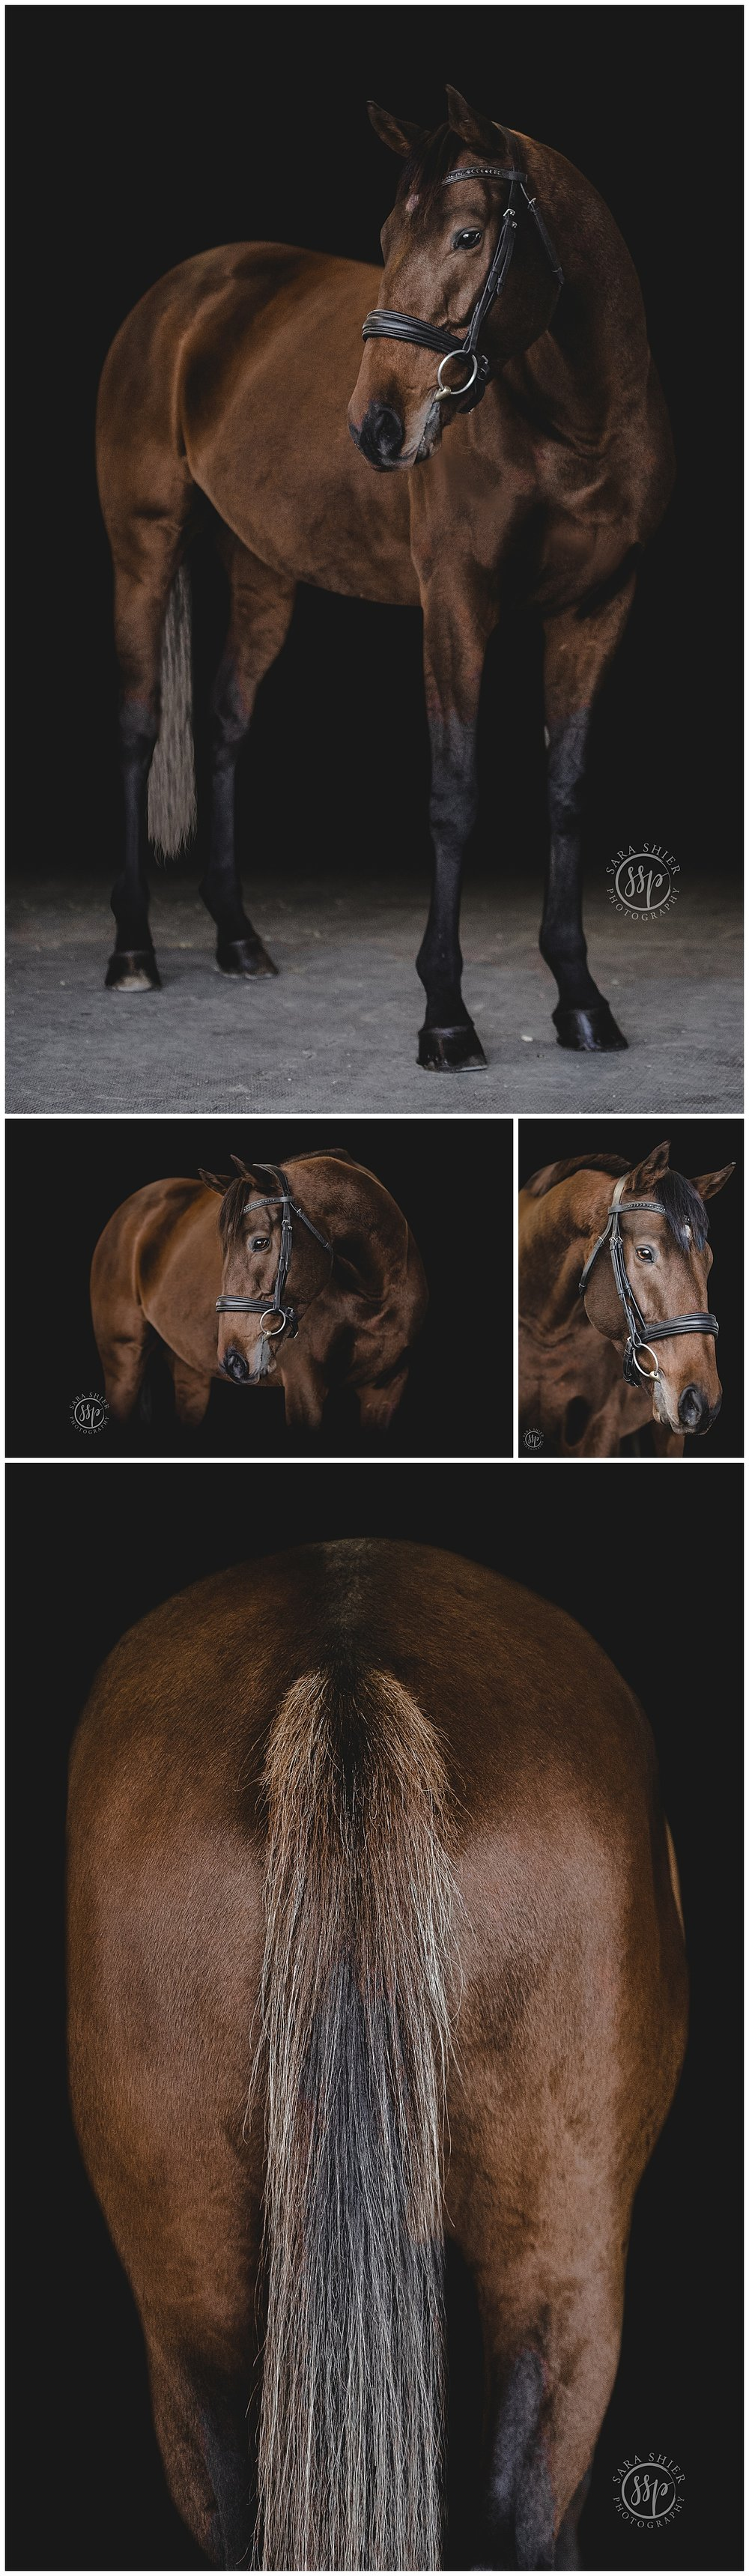 Black Background Horse Rider Equine Photographer Southern California Sara Shier Photography SoCal Equestrian Cowgirl_0252.jpg